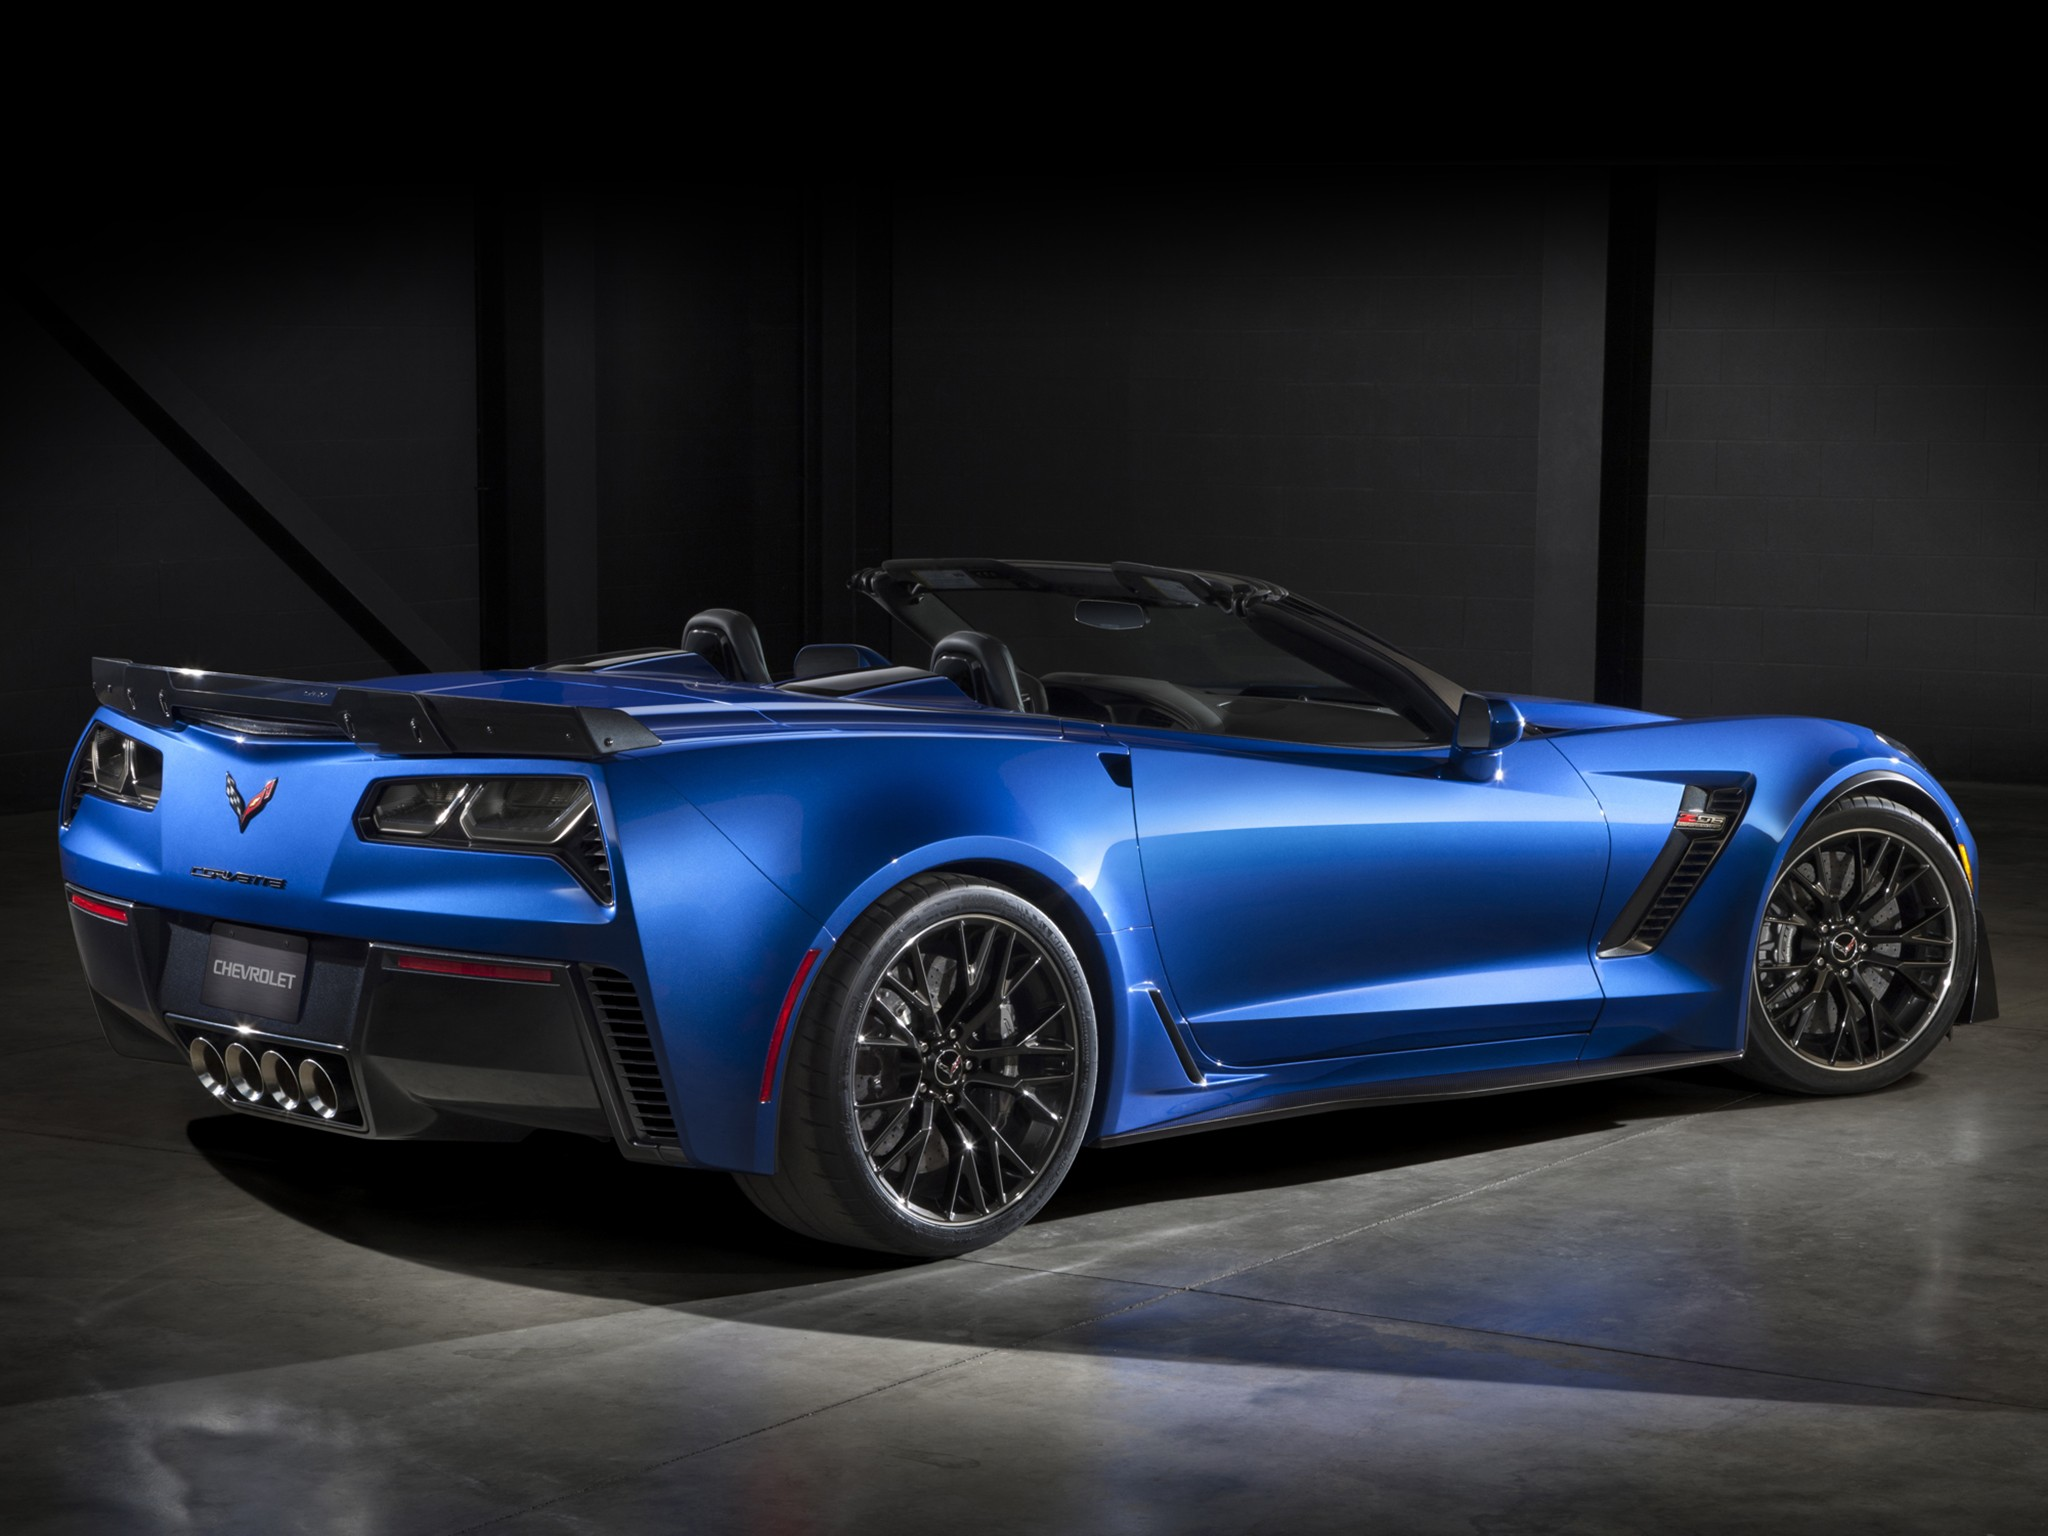 chevrolet corvette stingray convertible c7 specs 2013 2014 2015 2016 2017 2018. Black Bedroom Furniture Sets. Home Design Ideas